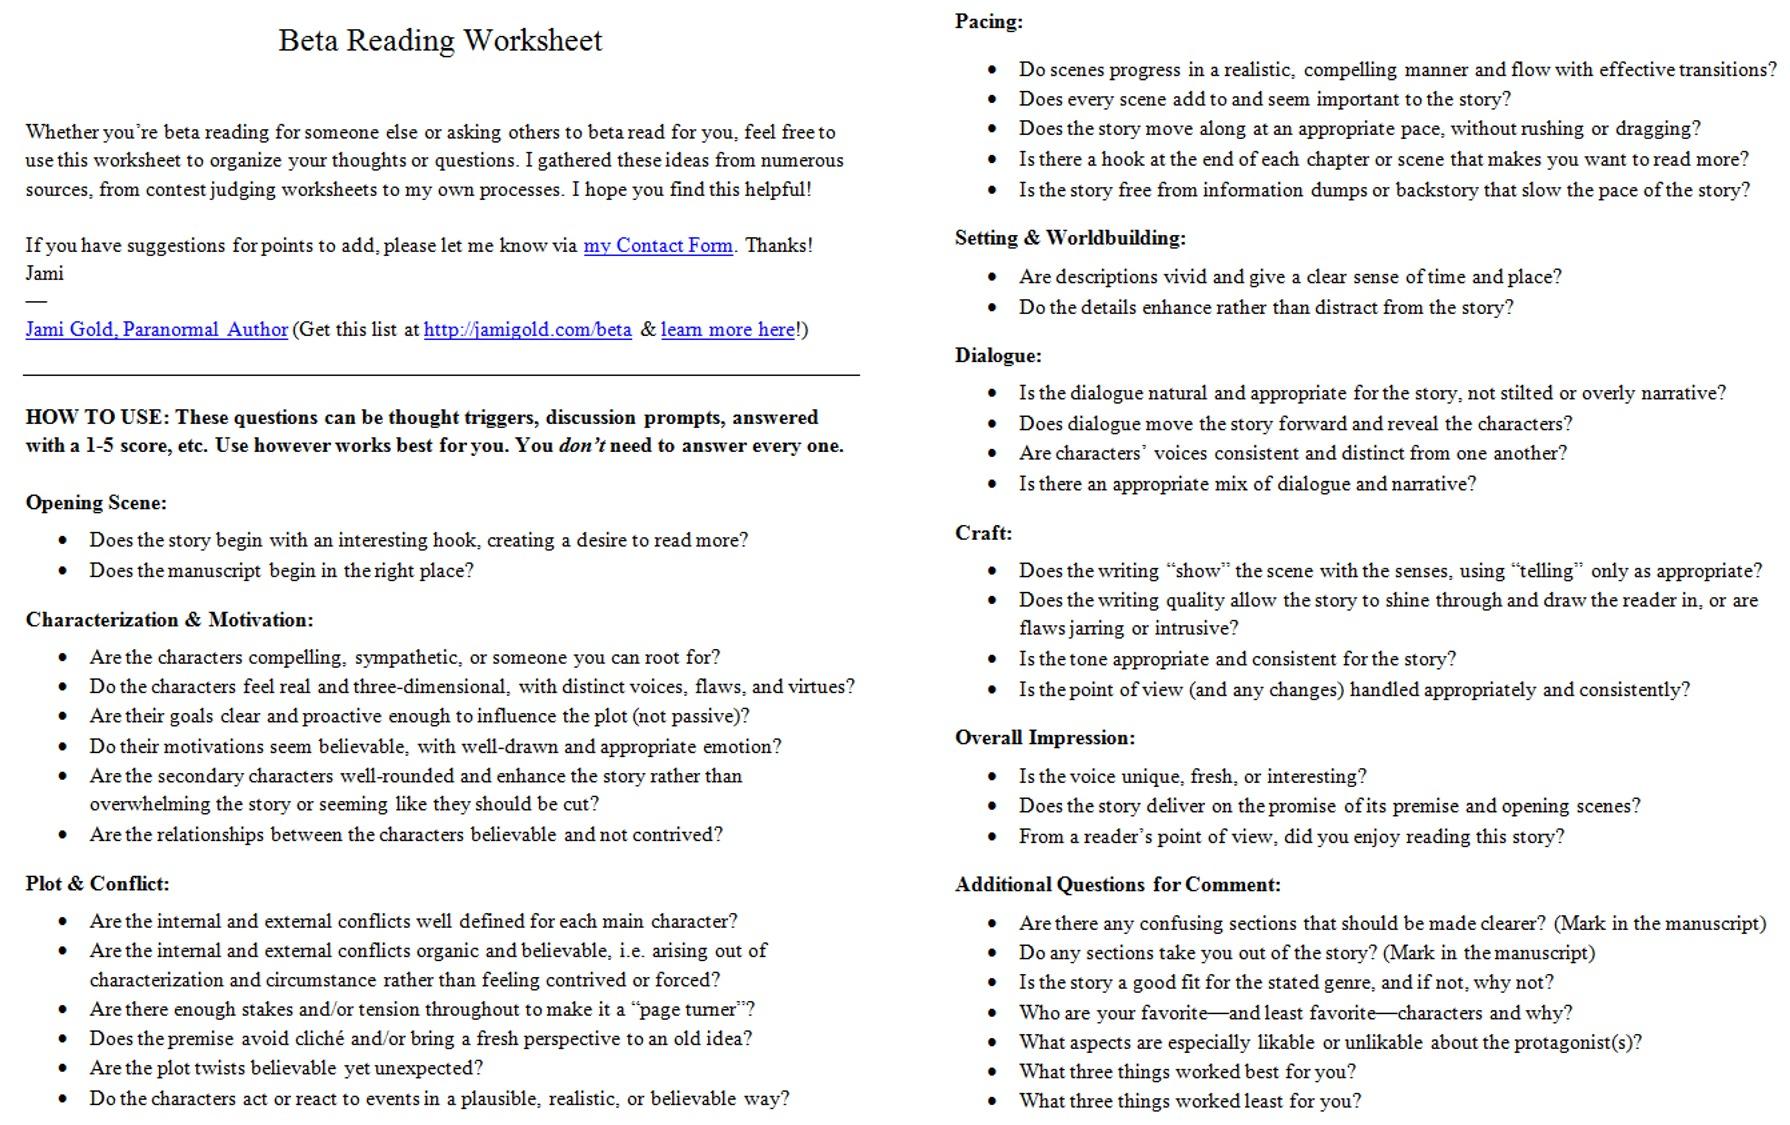 Aldiablosus  Surprising Worksheets For Writers  Jami Gold Paranormal Author With Handsome Screen Shot Of The Twopage Beta Reading Worksheet With Astounding Comparing Mixed Numbers And Improper Fractions Worksheet Also Long And Short Vowel Sounds Worksheets For Grade  In Addition Hindi Opposites Worksheet And Free Printable Handwriting Worksheet As Well As Mixed Improper Fractions Worksheet Additionally Following Directions Coloring Worksheet From Jamigoldcom With Aldiablosus  Handsome Worksheets For Writers  Jami Gold Paranormal Author With Astounding Screen Shot Of The Twopage Beta Reading Worksheet And Surprising Comparing Mixed Numbers And Improper Fractions Worksheet Also Long And Short Vowel Sounds Worksheets For Grade  In Addition Hindi Opposites Worksheet From Jamigoldcom